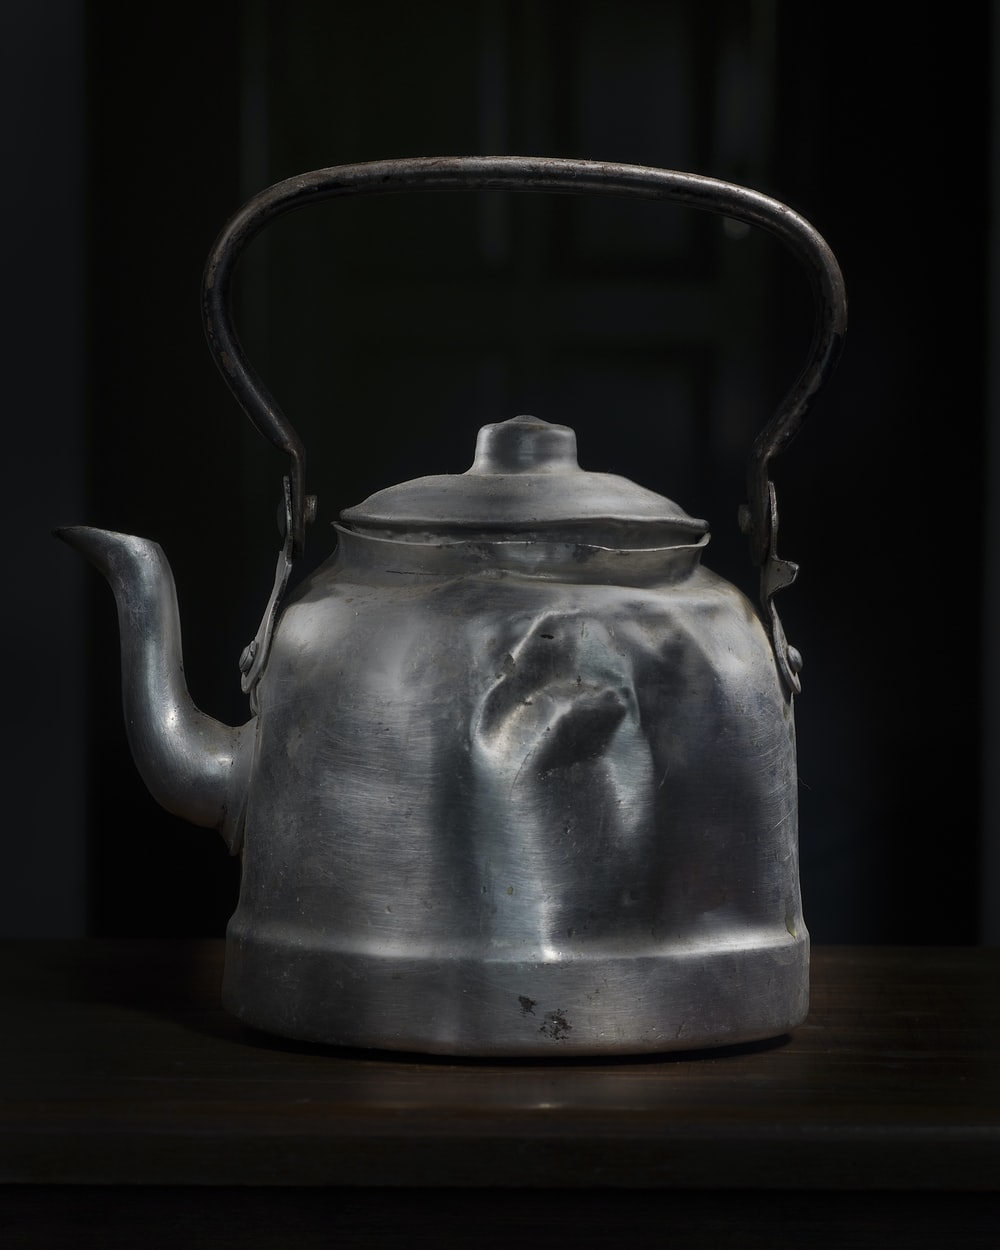 gray steel kettle